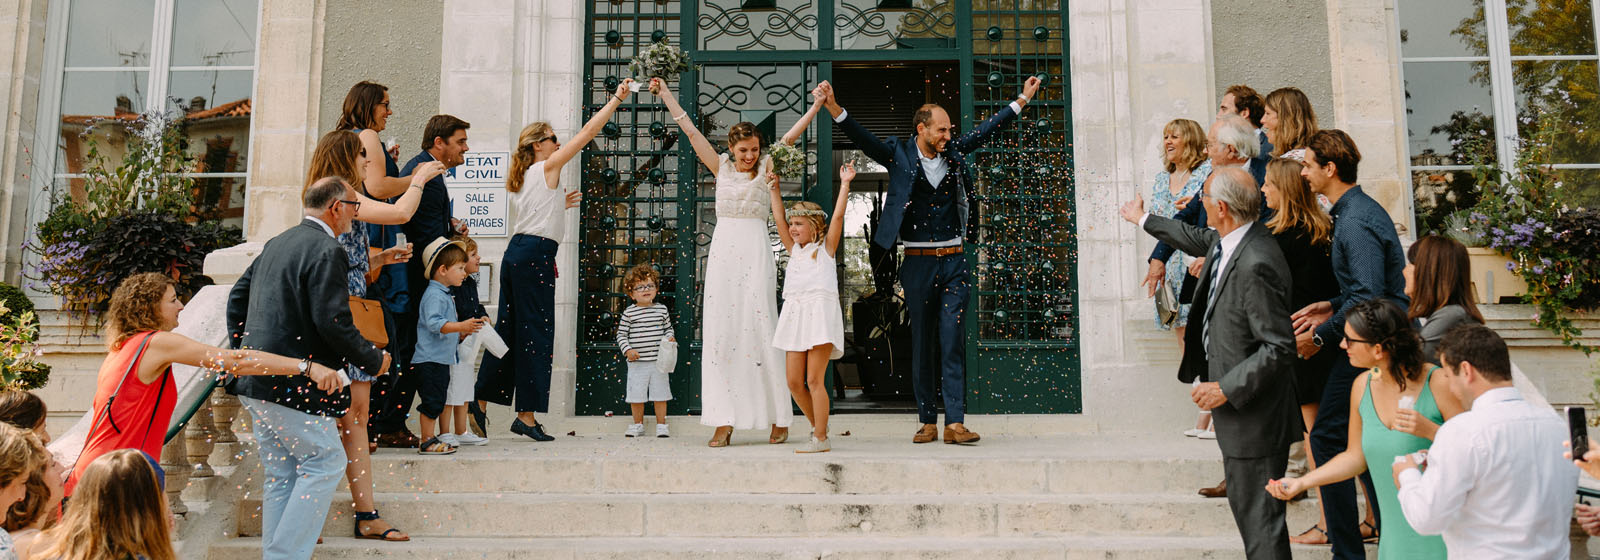 luke sezeck wedding photographer bordeaux france